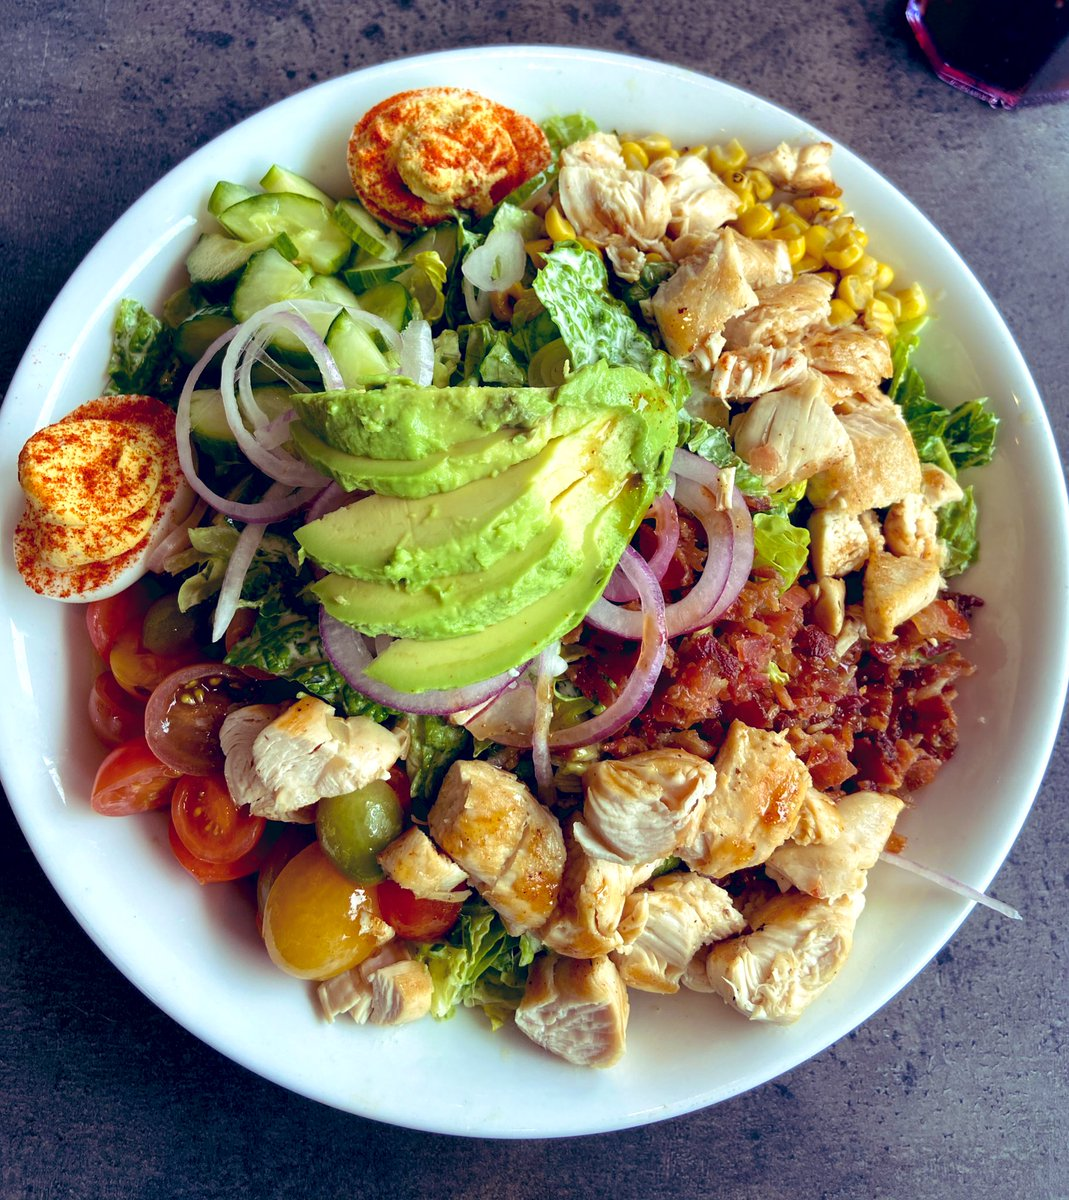 Keto-friendly lunch today. Southern Goddess salad: sub the fried chicken with grilled chicken! You can also omit the corn and honey garlic drizzle for a lower carb count. Yum! pic.twitter.com/mw1y1SkD37